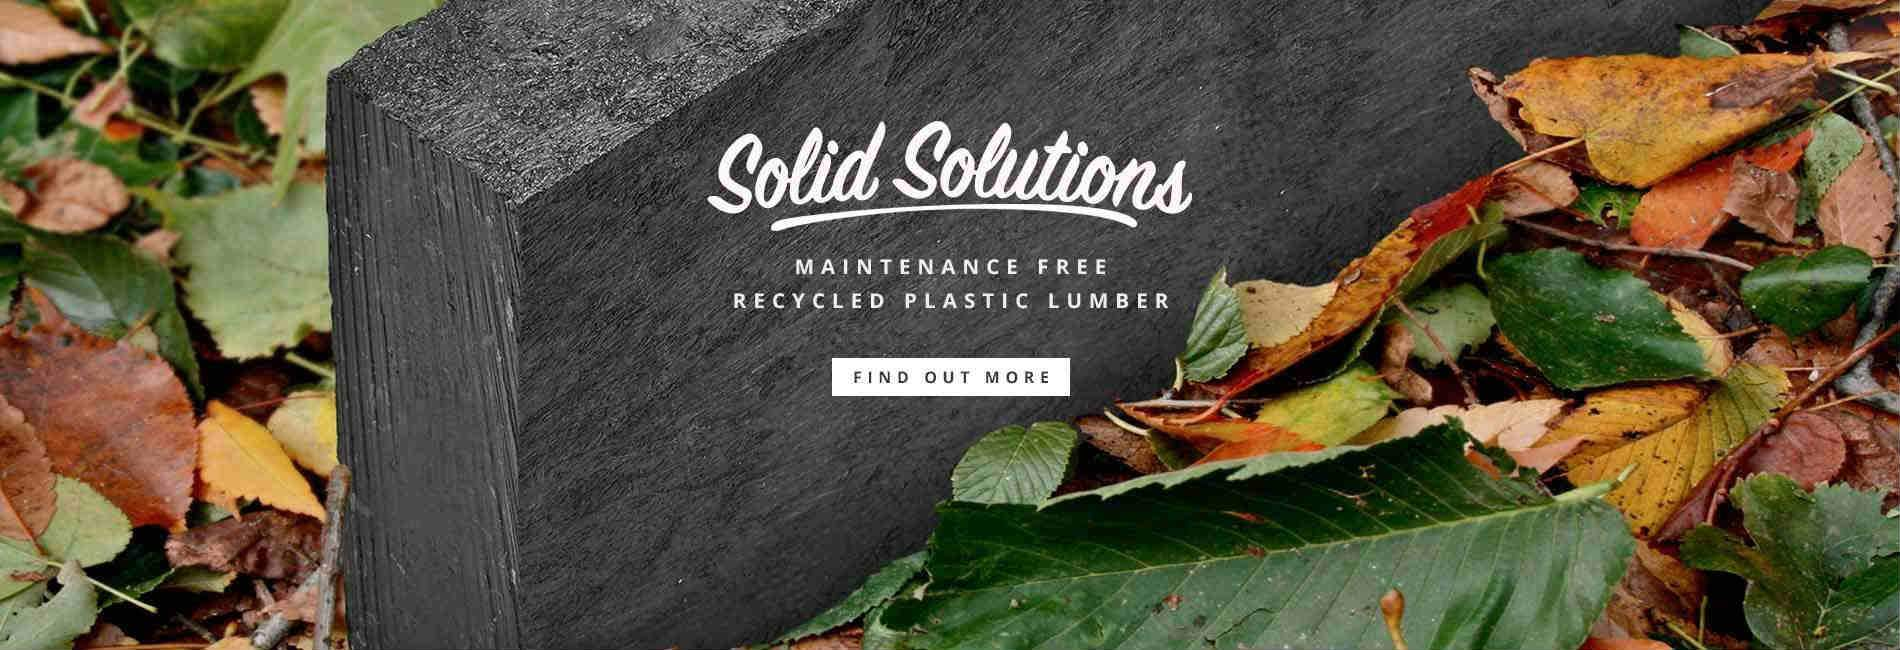 Manticore recycled plastic lumber